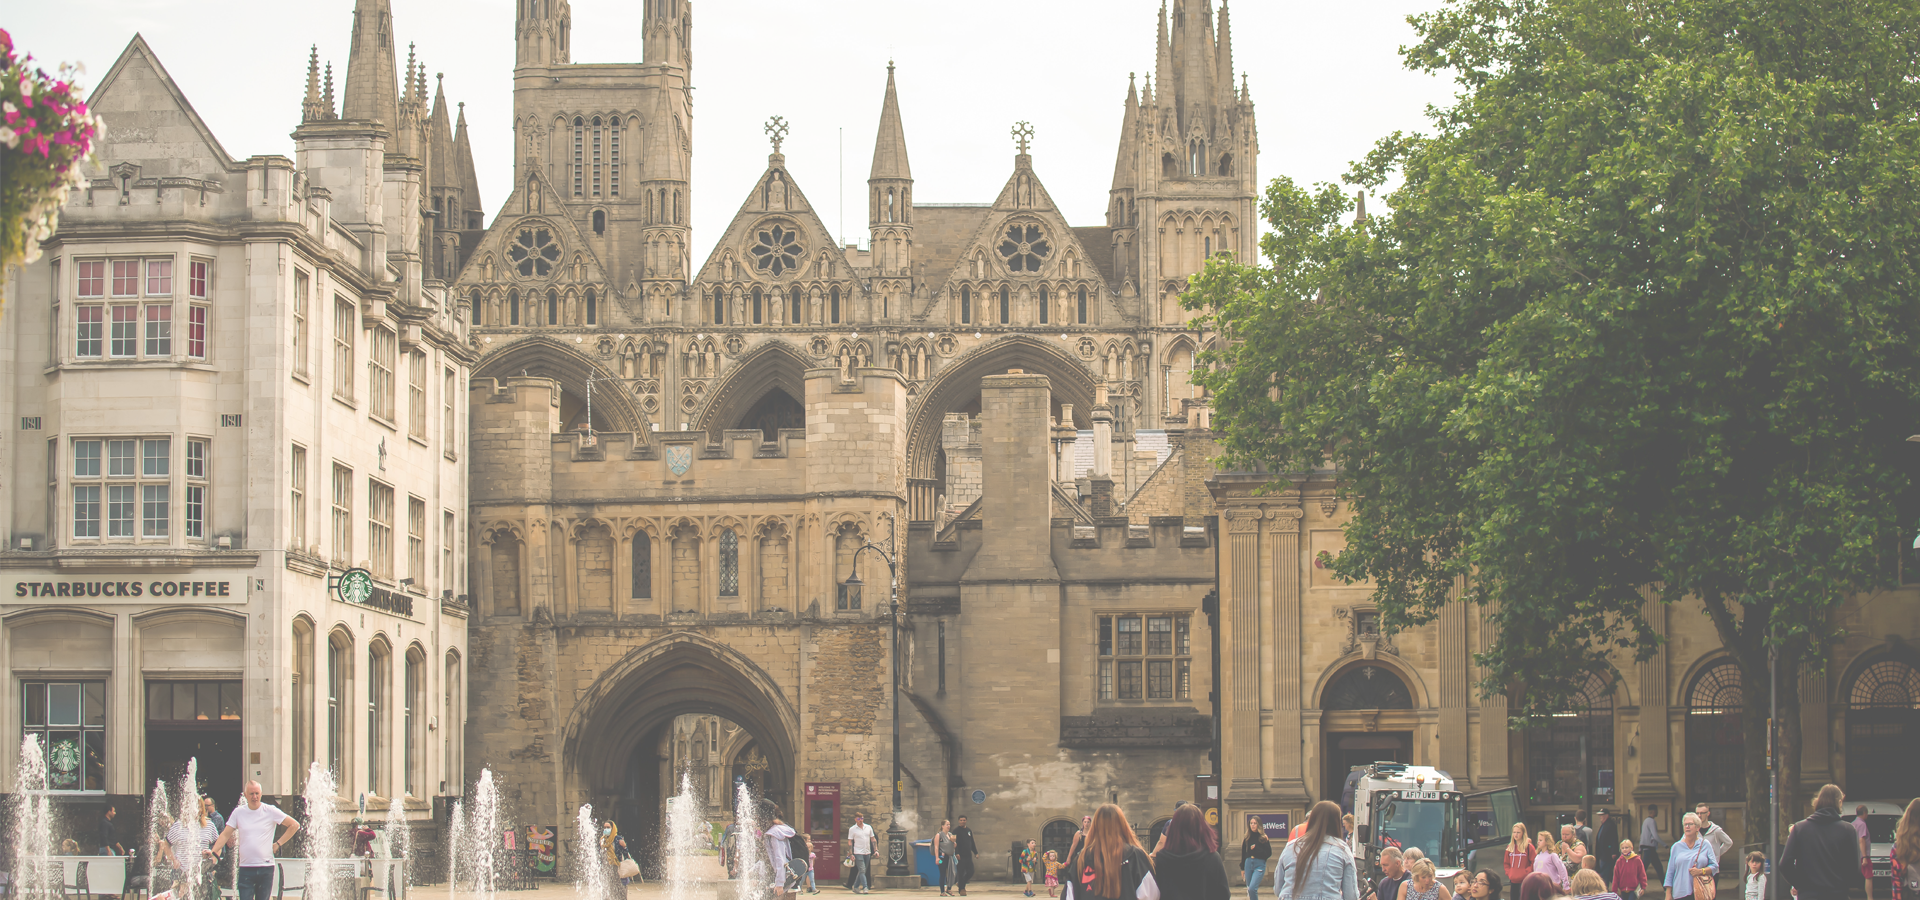 Peer-to-peer advisory in Peterborough, Lincolnshire, England, Great Britain